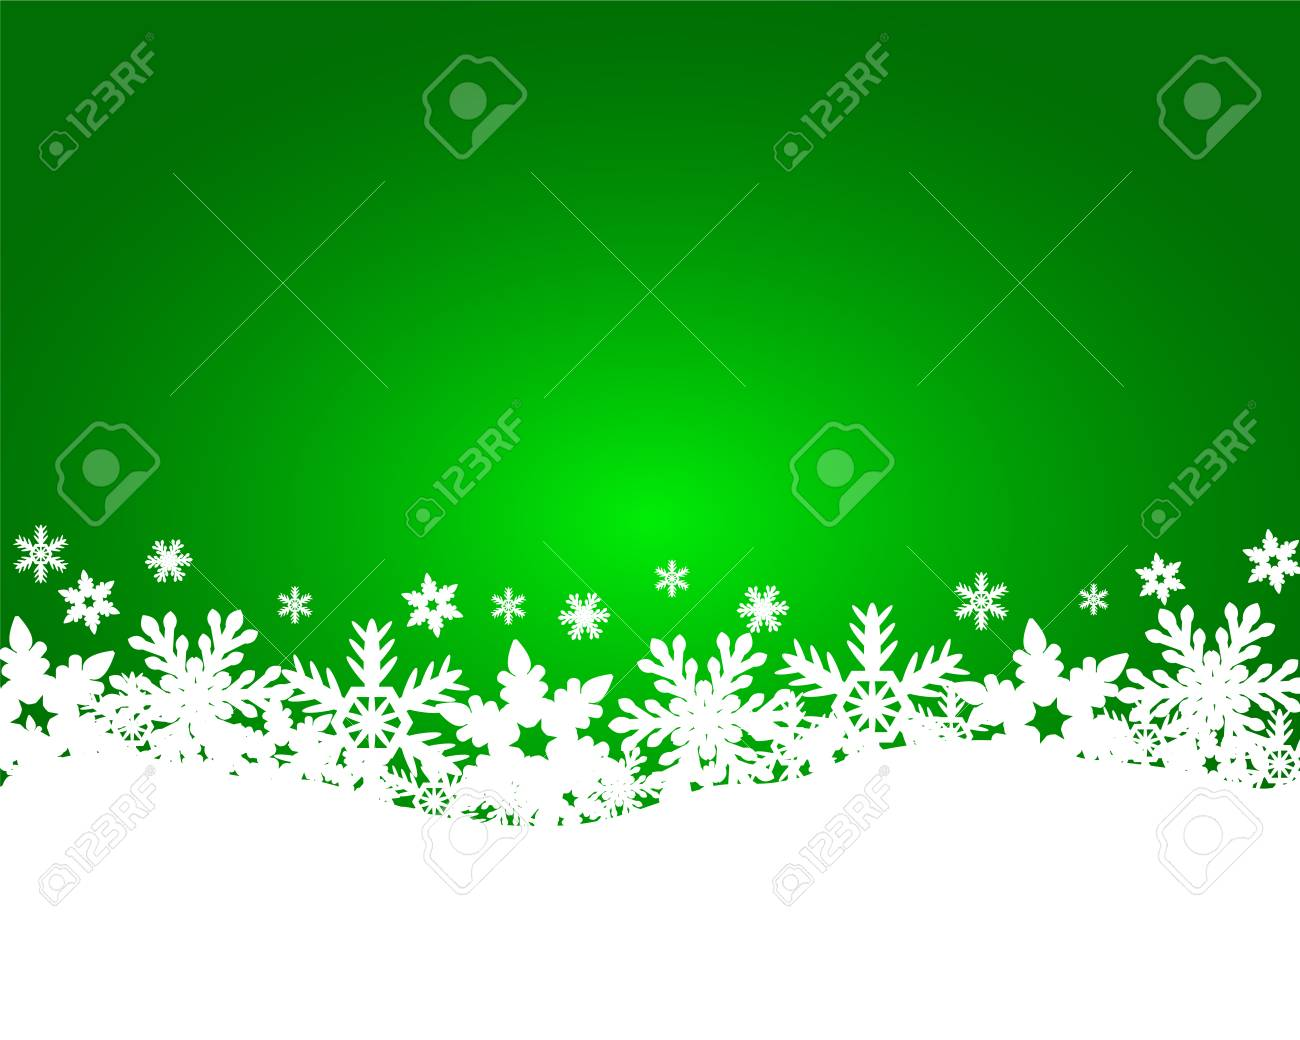 Christmas green background - 34069277